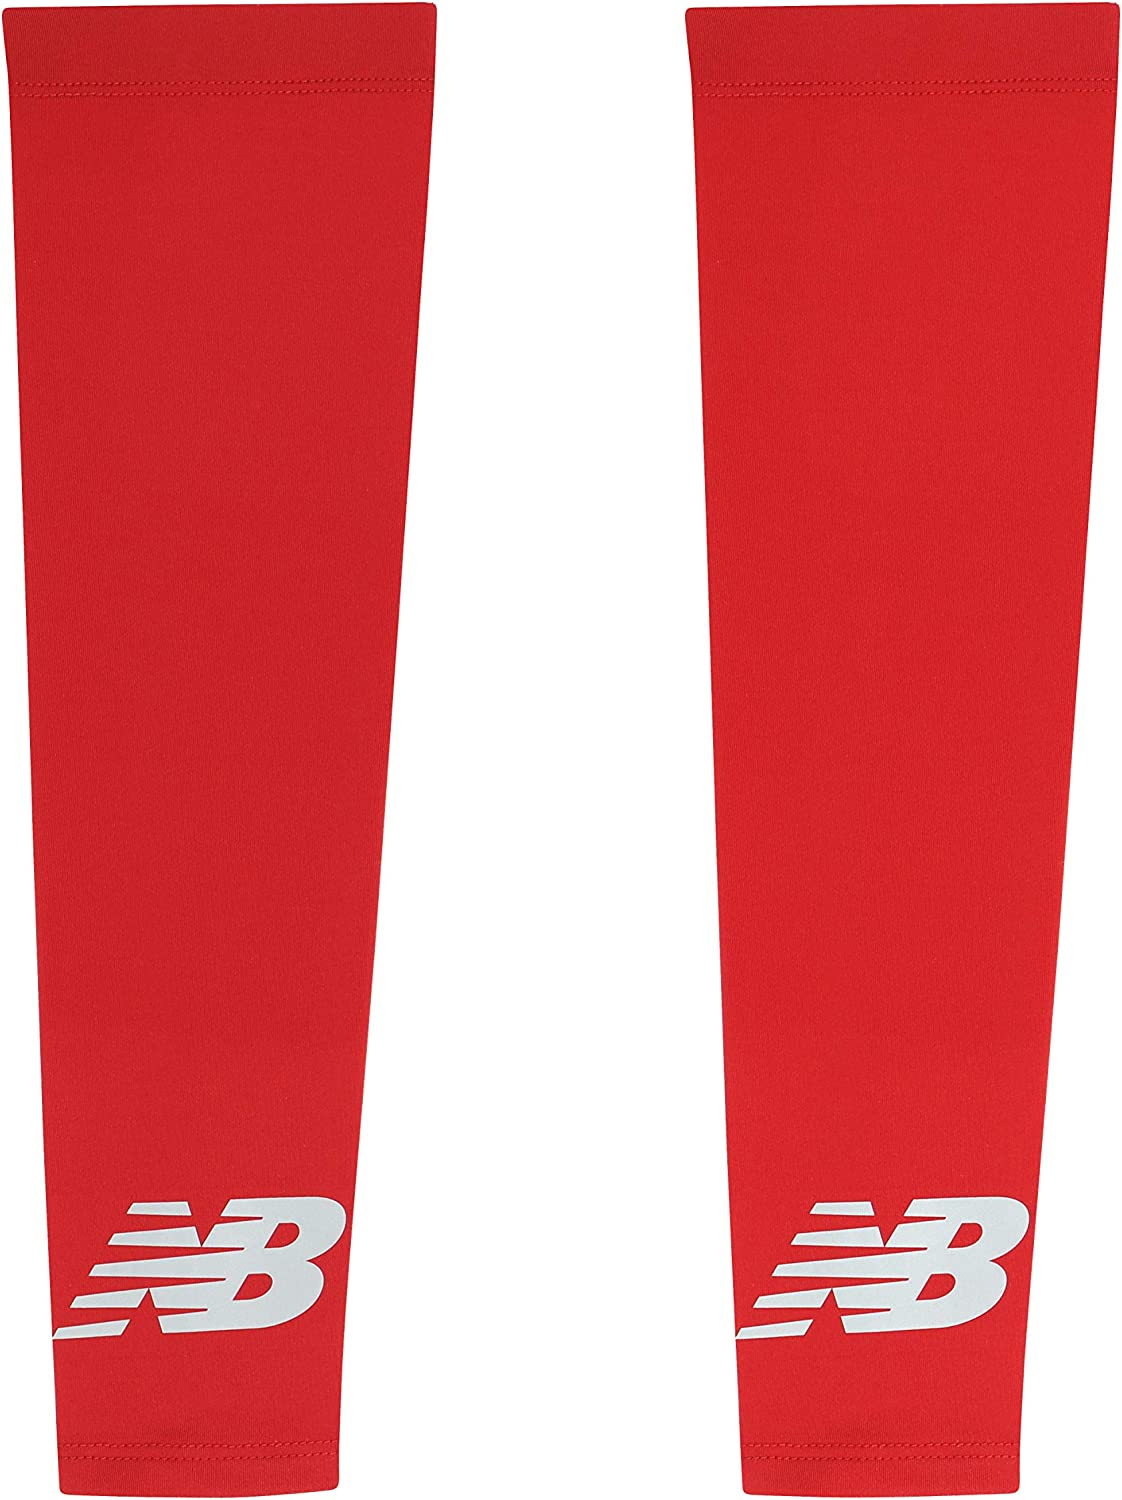 New Balance Unisex Outdoor Sports Compression Arm Sleeves, Arm Warmer, Black and White (1 Pair) : Clothing